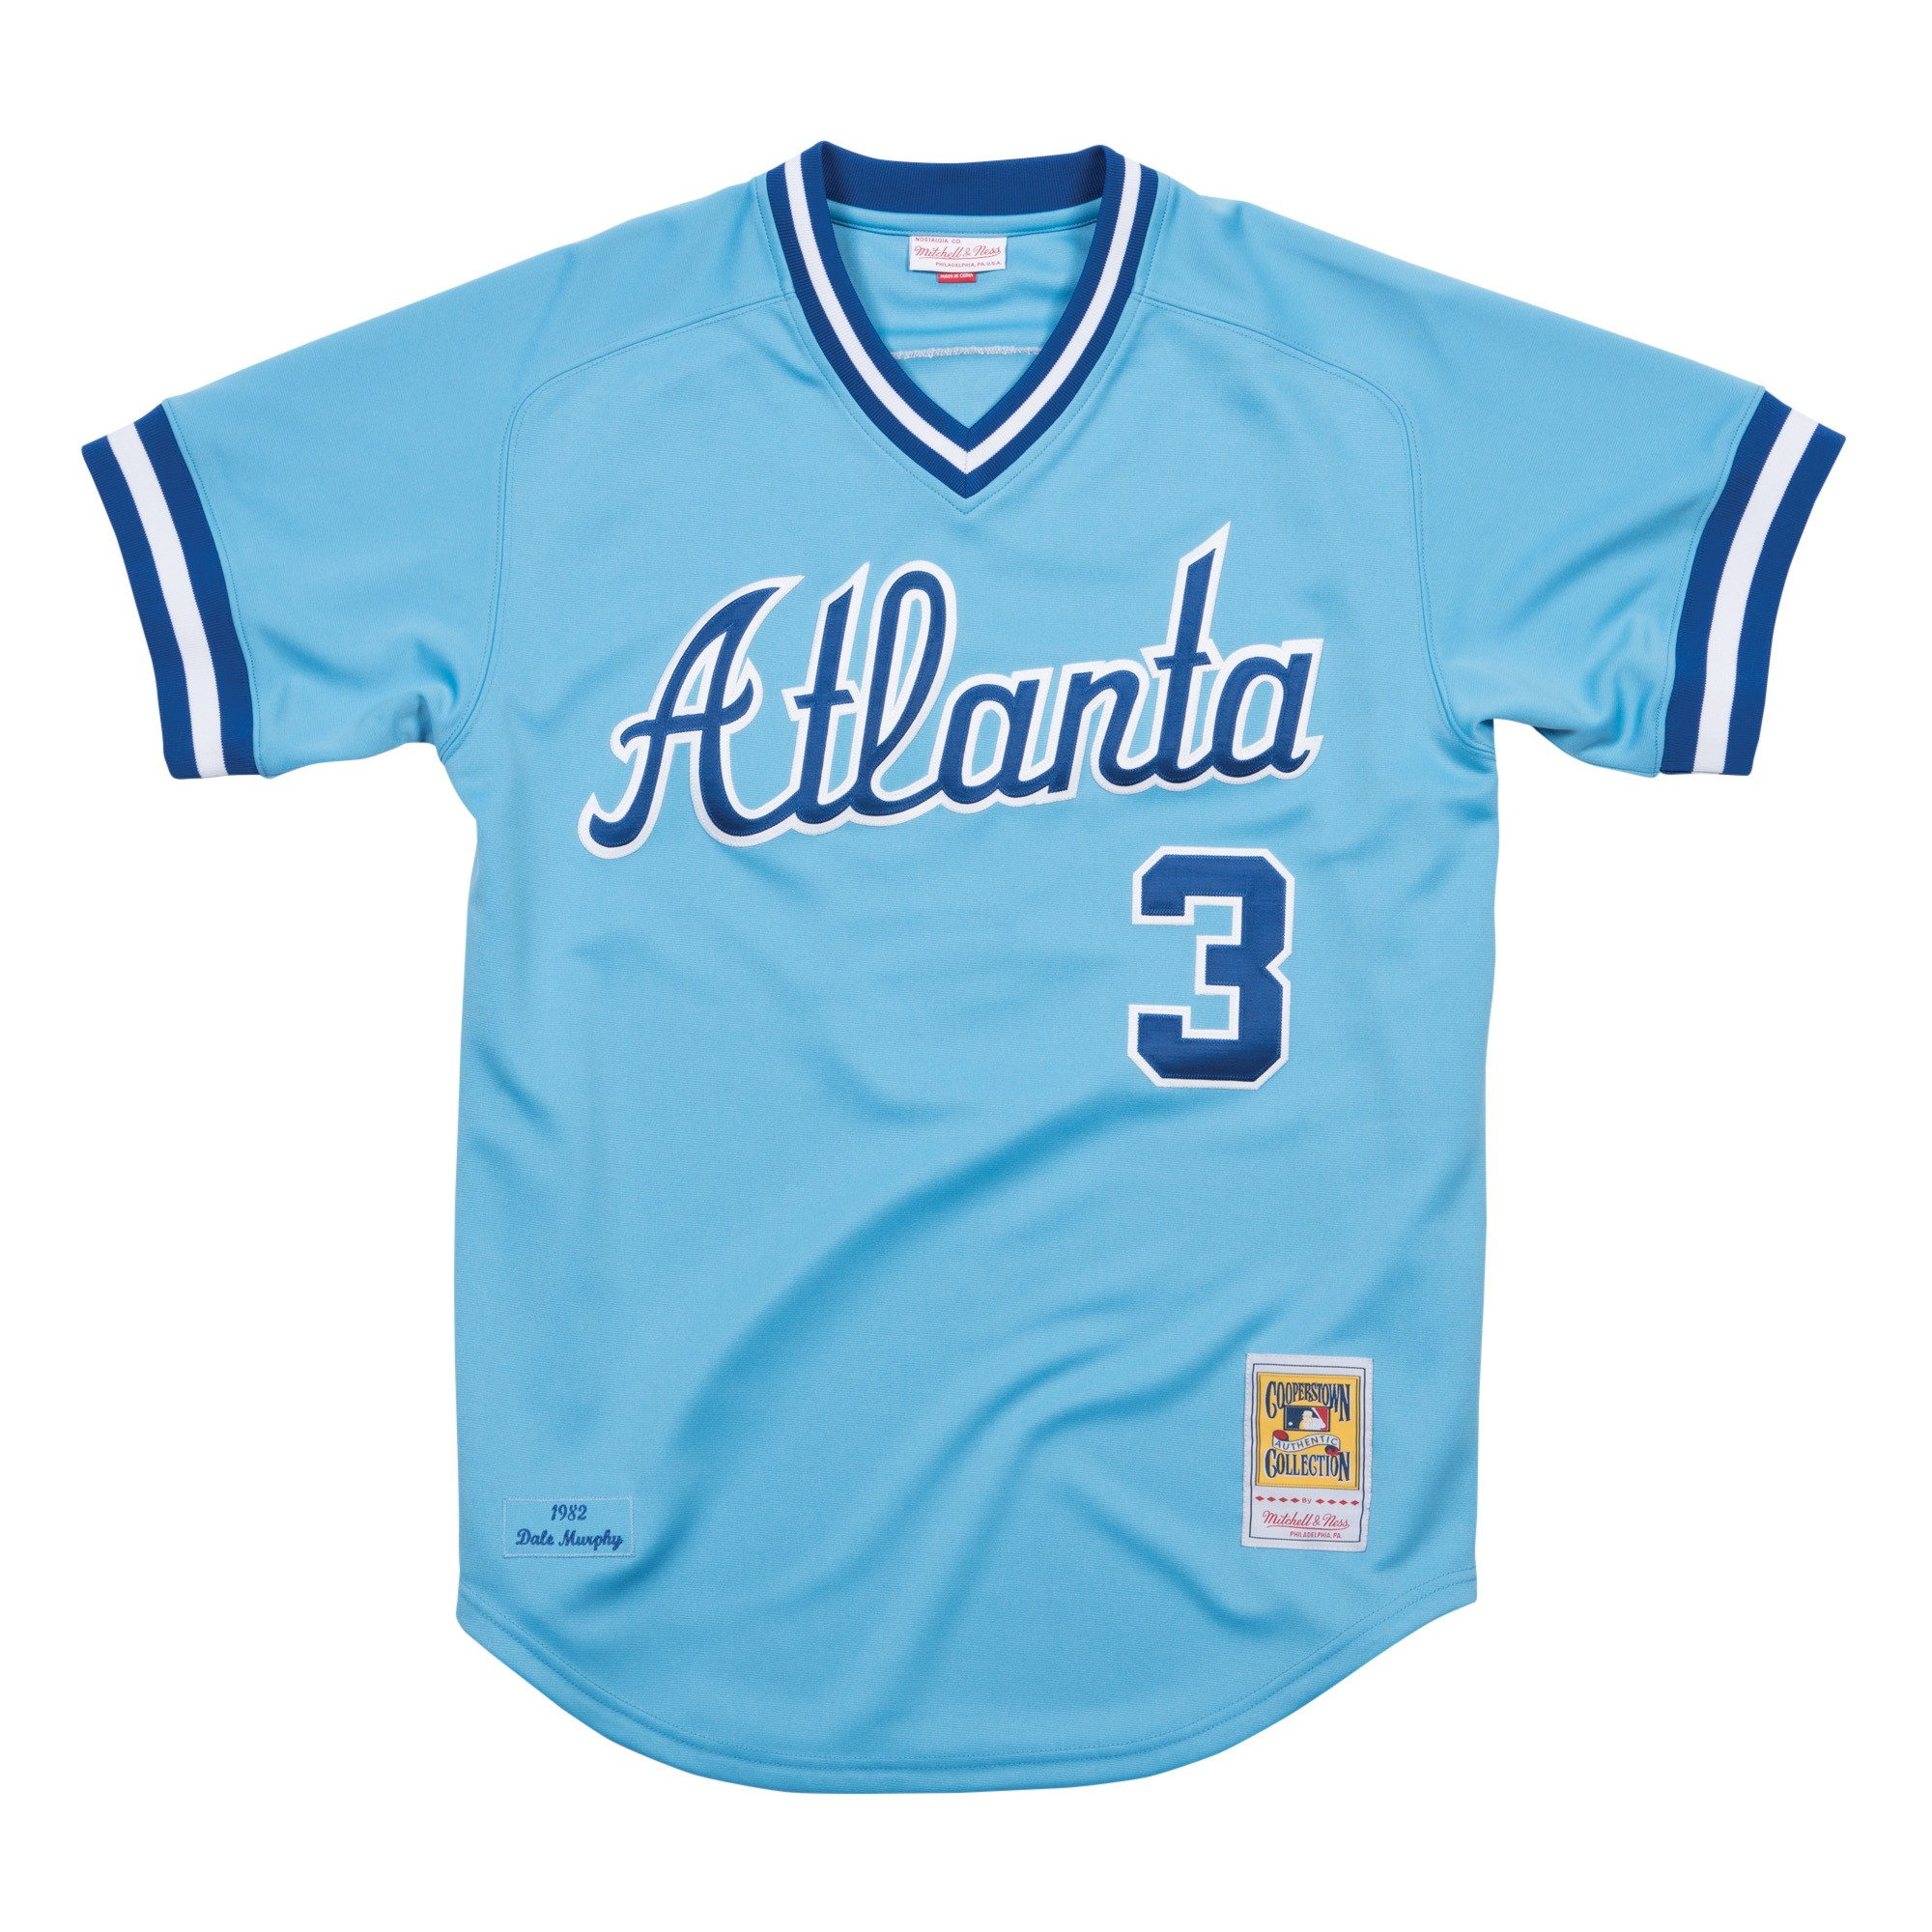 962b7b269 Details about Dale Murphy Atlanta Braves Mitchell   Ness MLB Authentic 1982 Road  Jersey